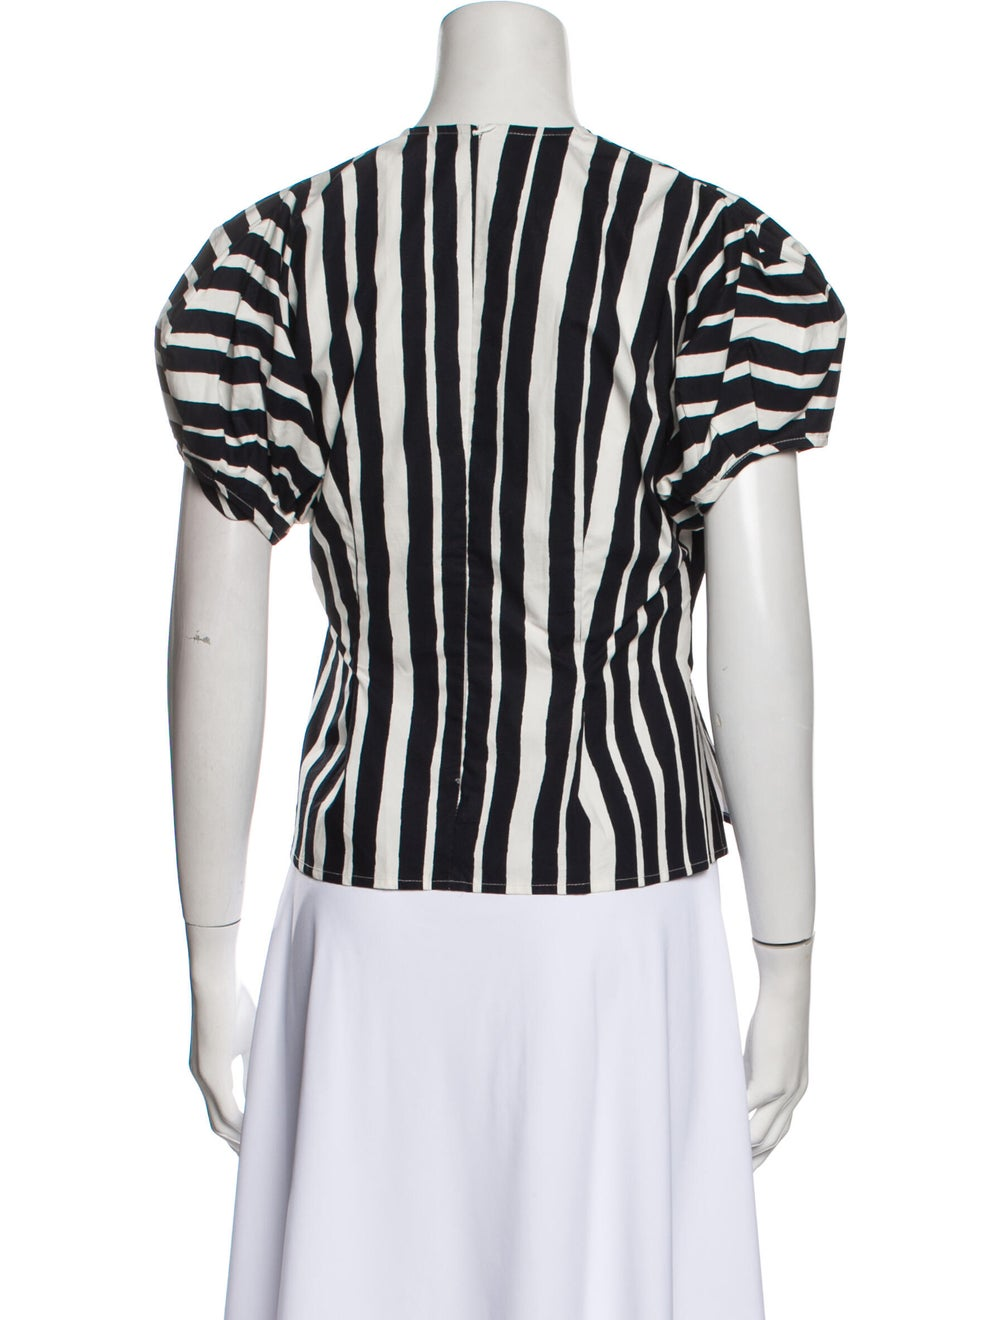 Beaufille Striped Crew Neck Top Black - image 3